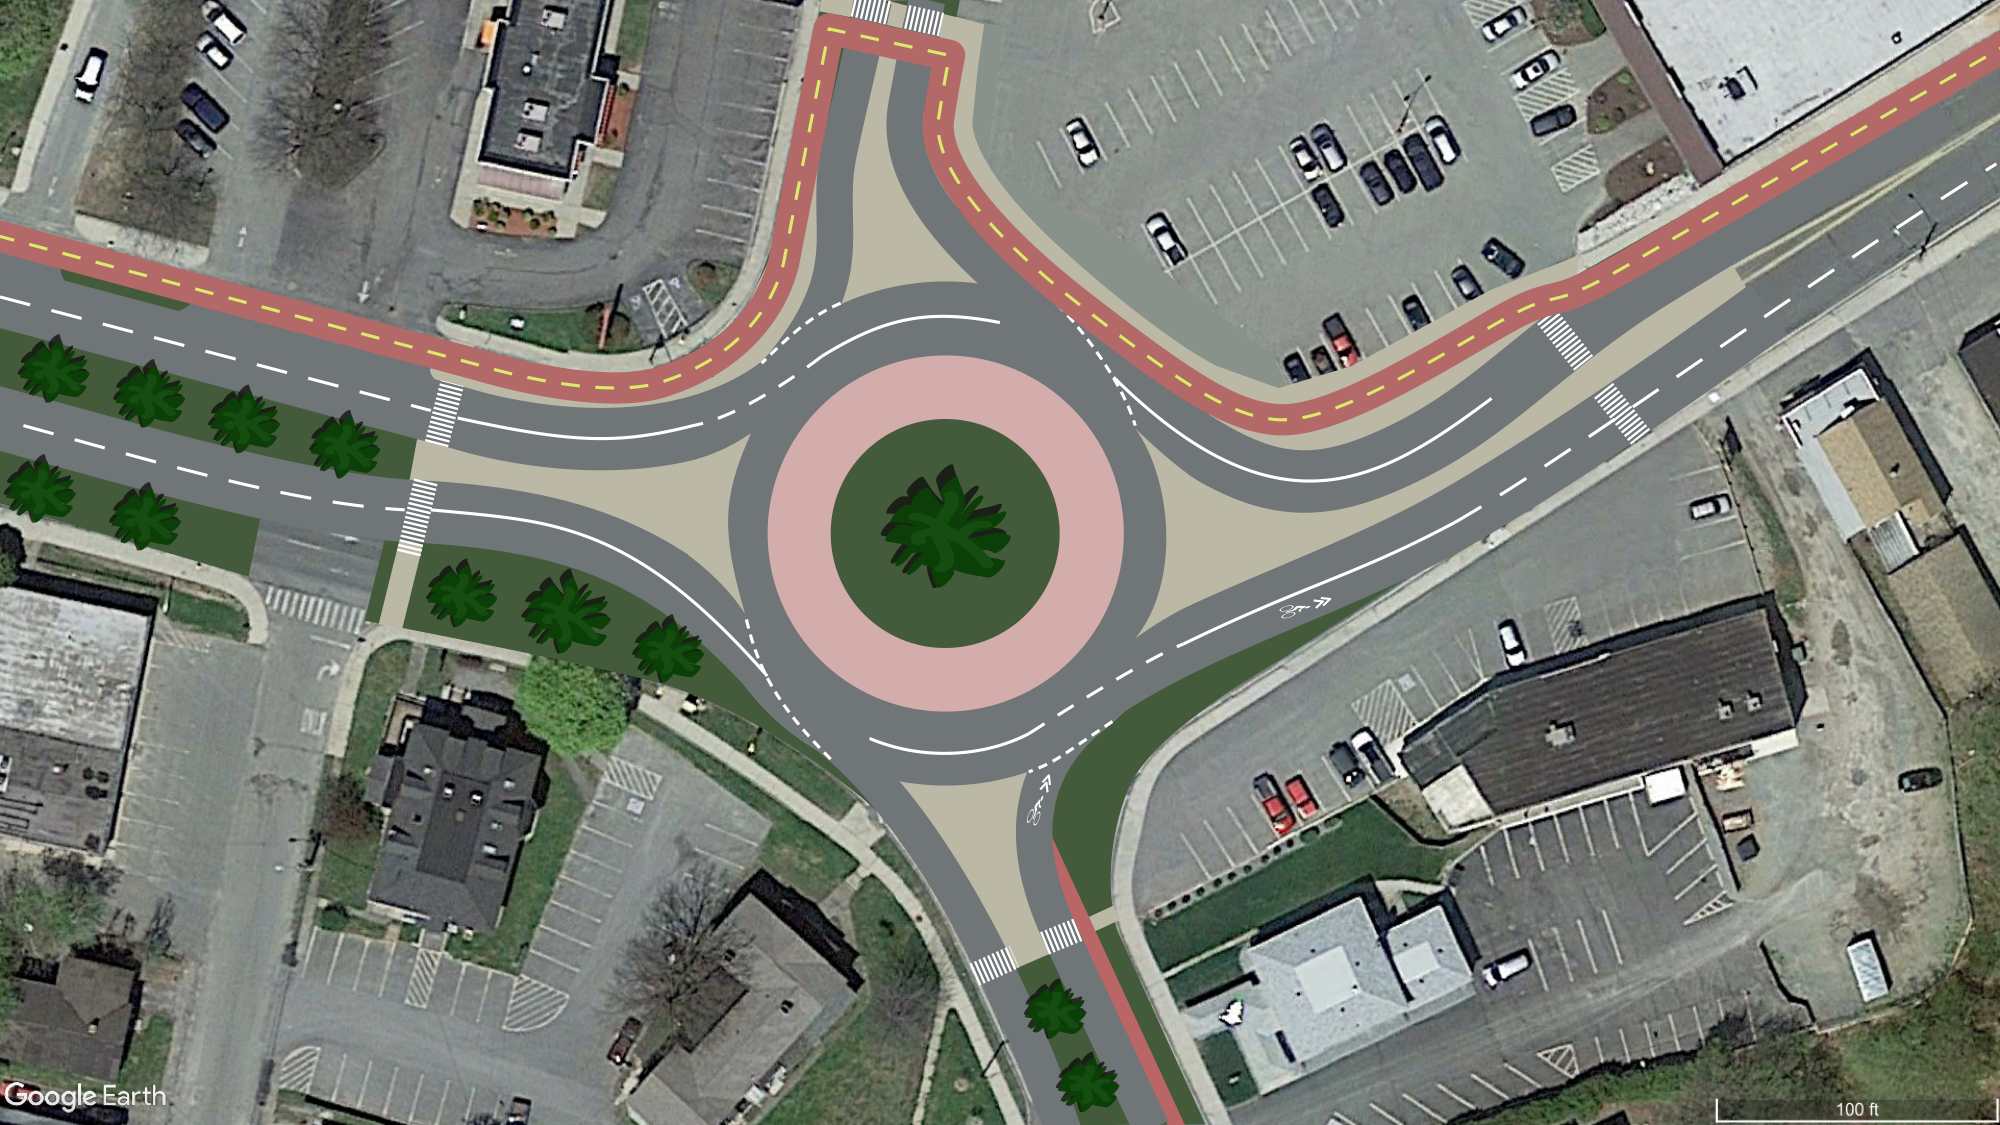 Concept of roundabout at East Street and Elm Street, along with a two-lane bicycle route connecting downtown with William Stanley Business Park.